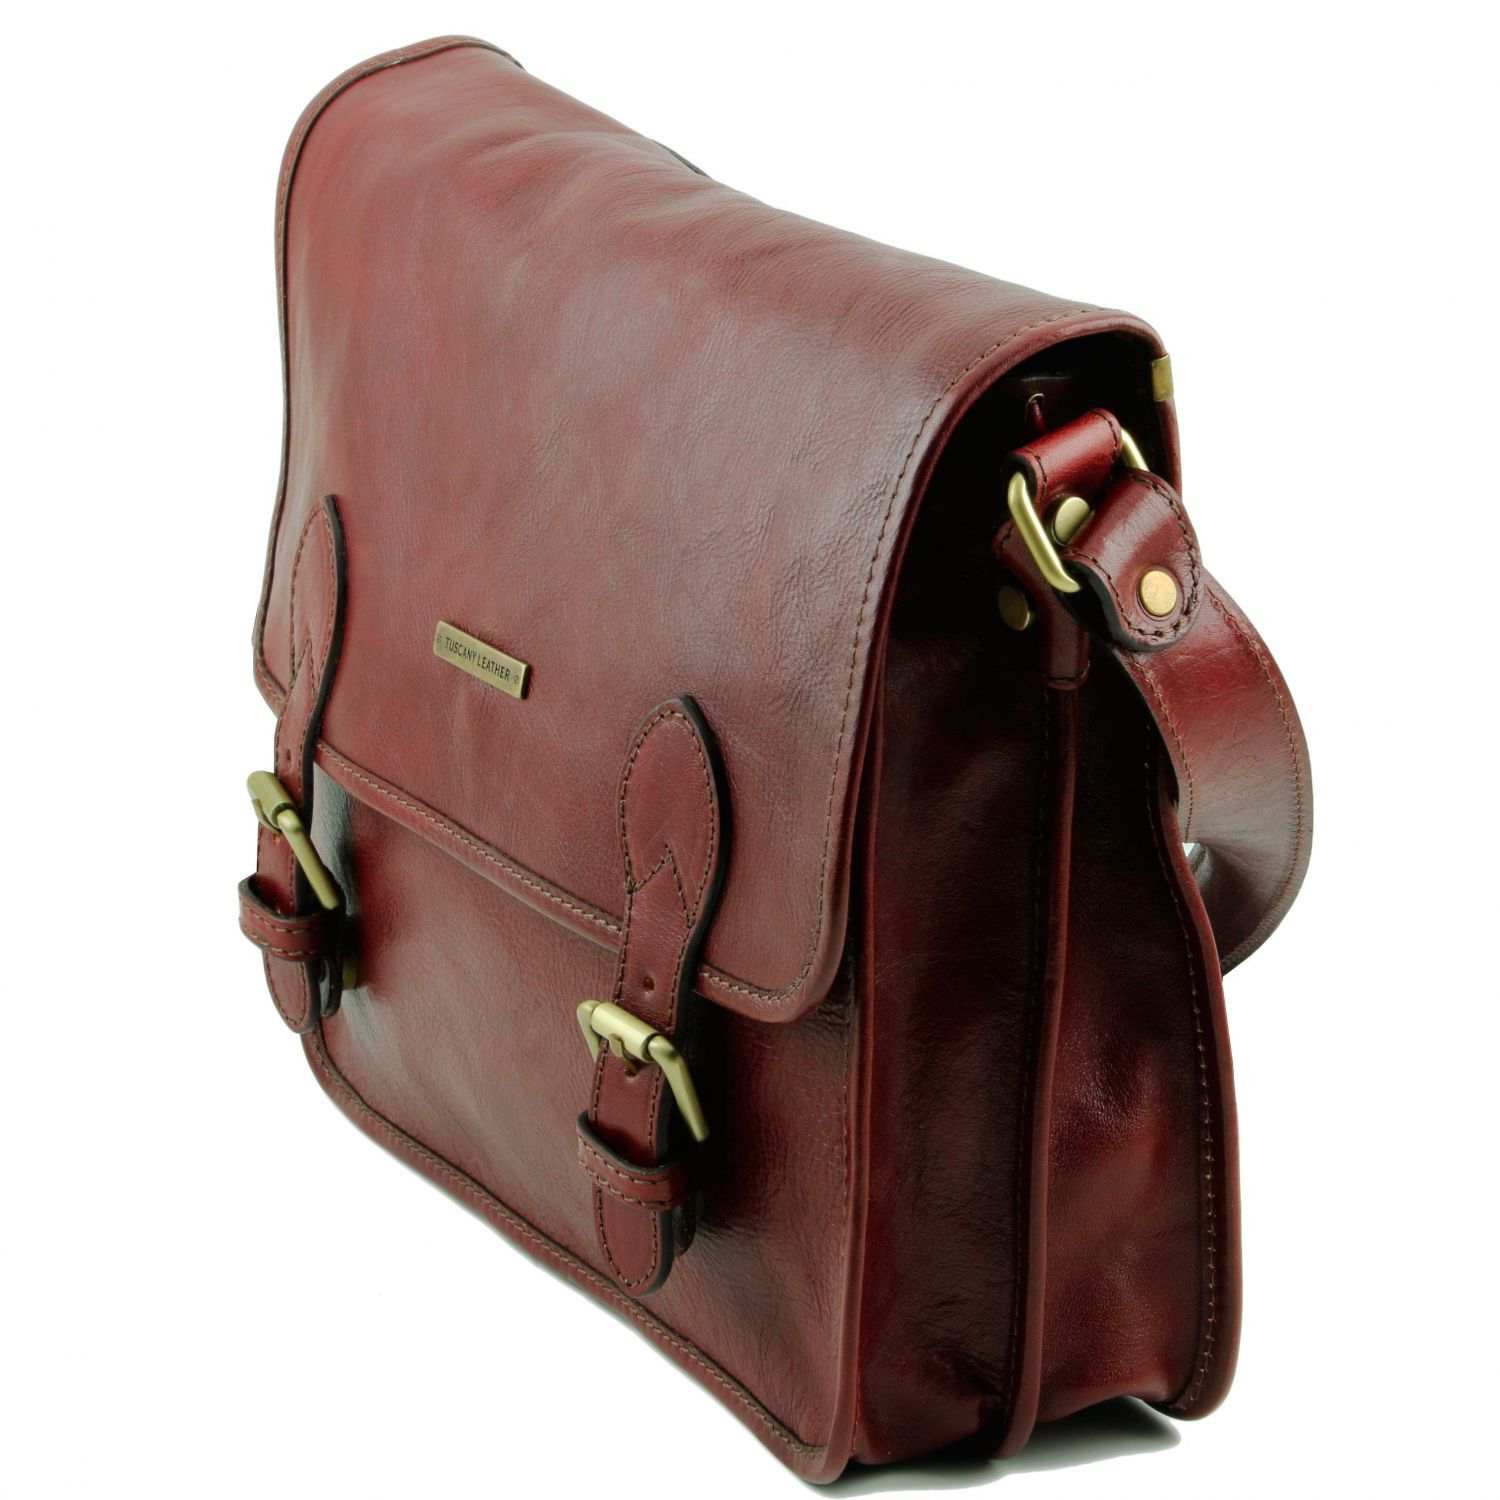 TL Postman - Leather messenger bag (TL141288) - Leather bags for men | DILUSSOBAGS